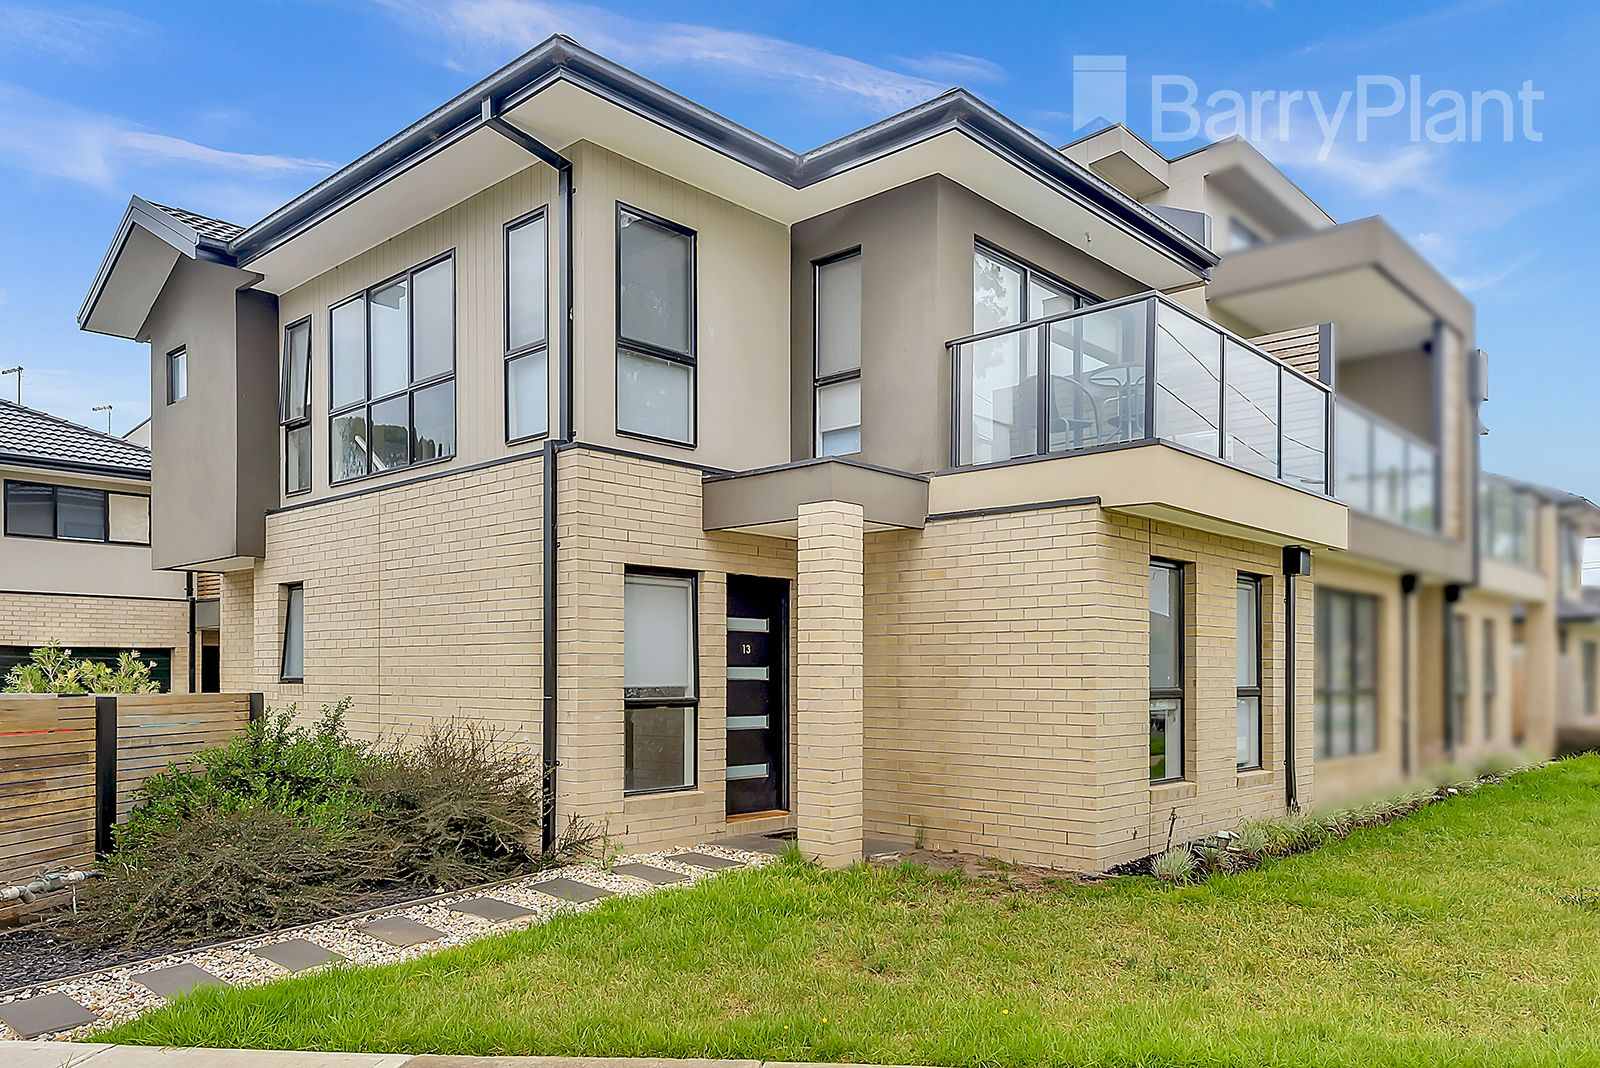 13/3 Crockett Avenue, Craigieburn VIC 3064, Image 0